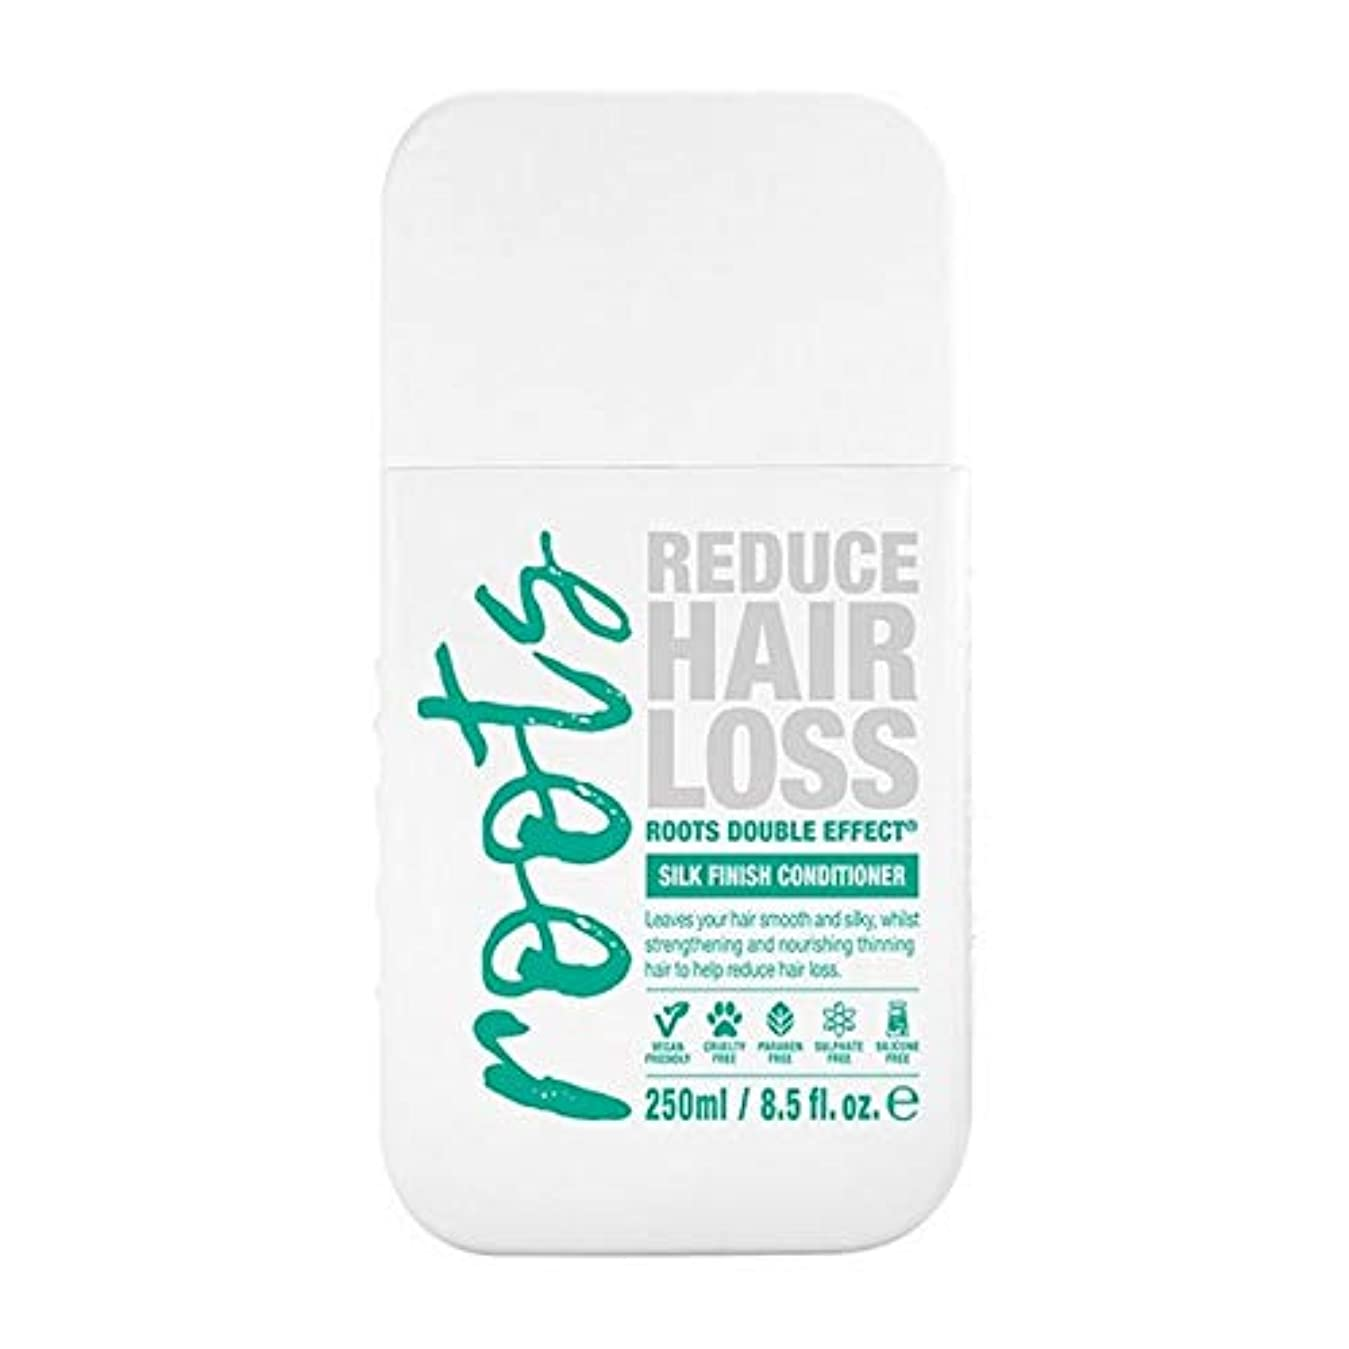 [Roots ] 根のダブル効果育毛シャンプー250Ml - Roots Double Effect Hair Growth Conditioner 250ml [並行輸入品]